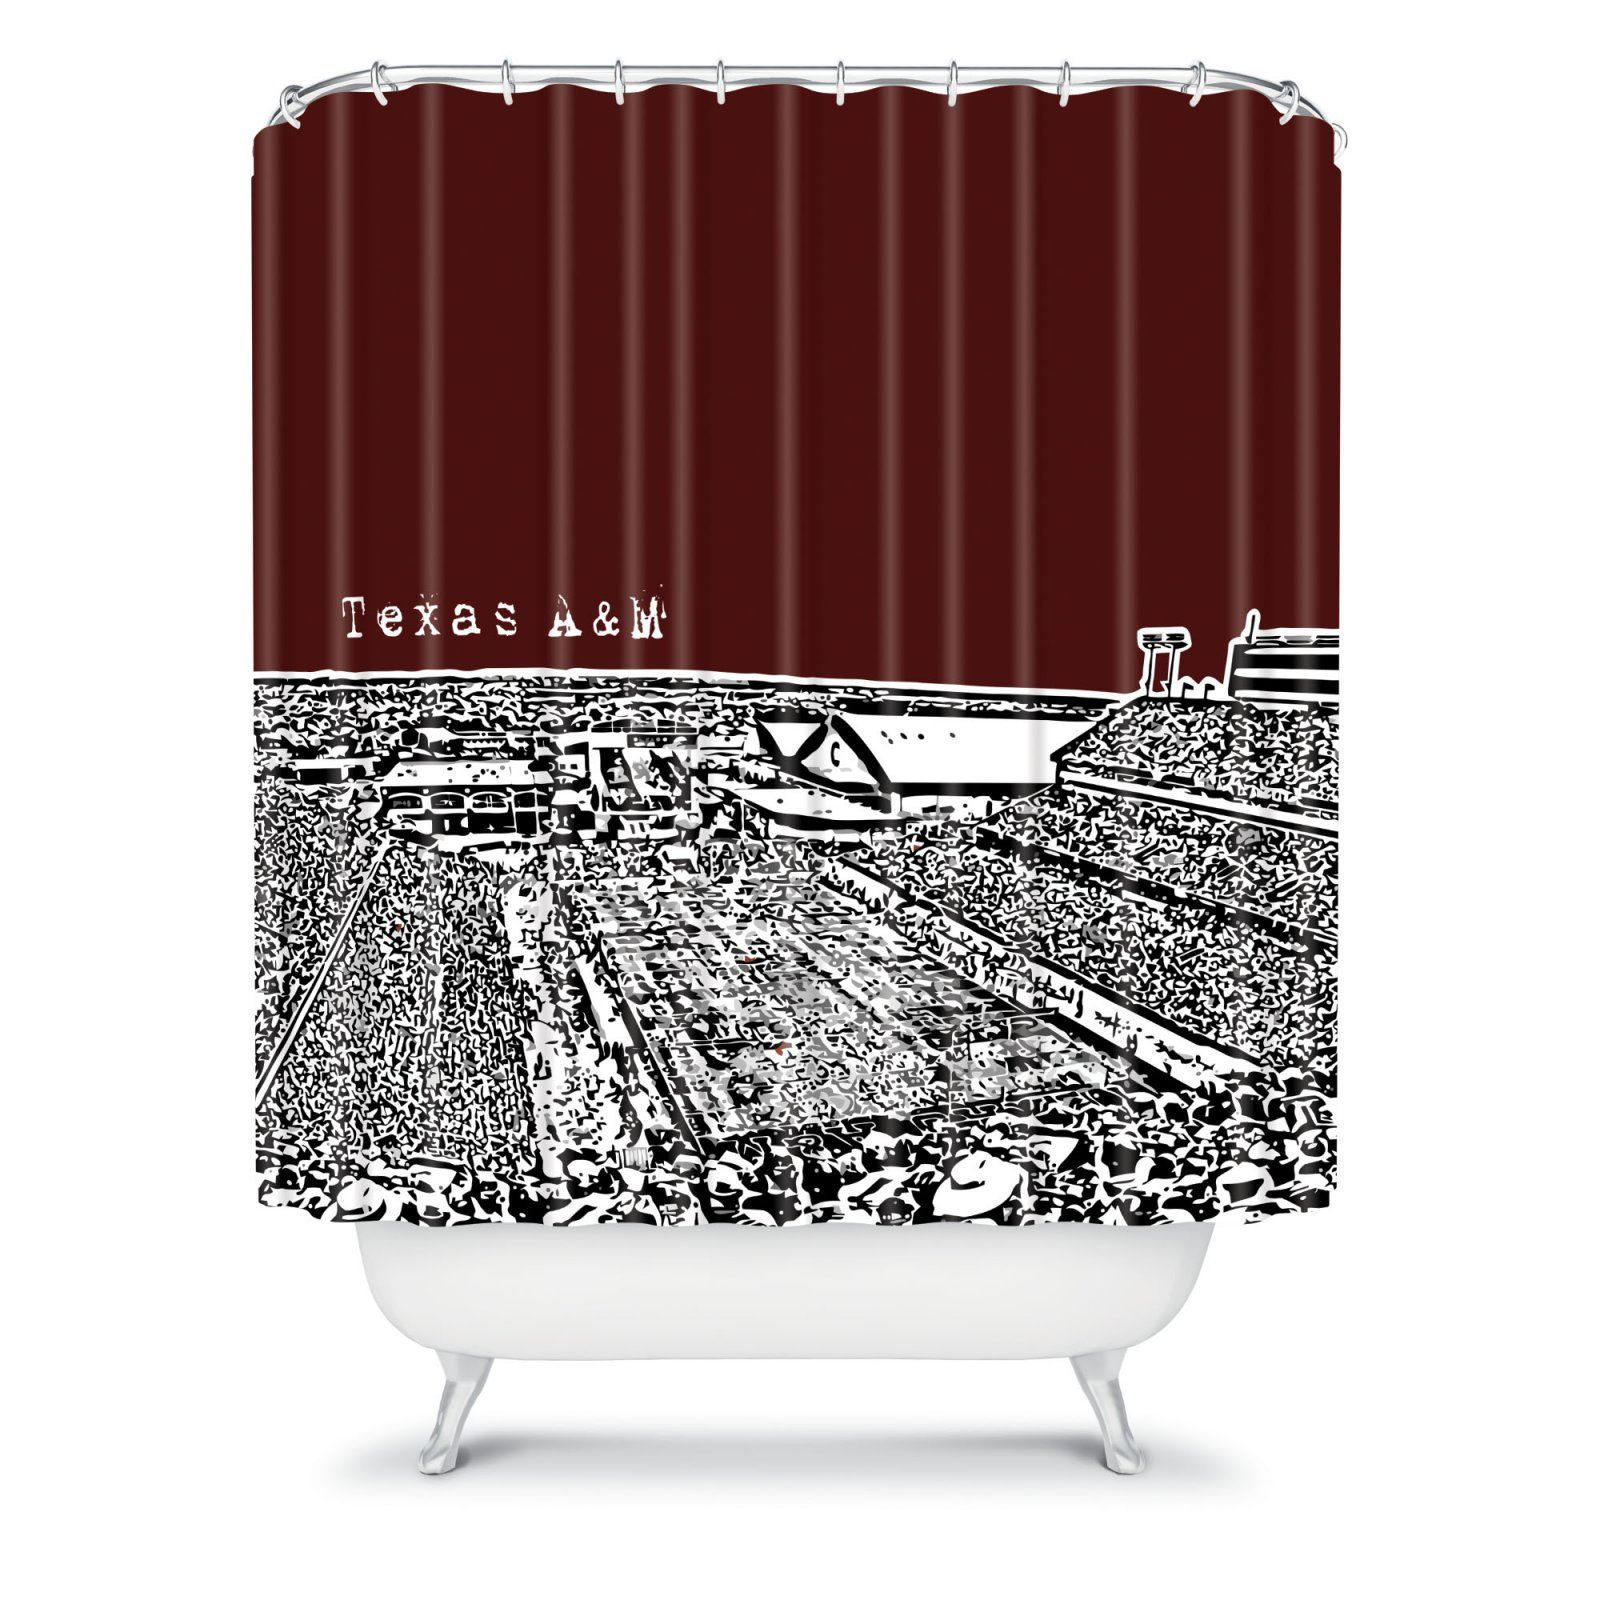 Deny Designs Bird Ave College Stadiums Shower Curtain Shower